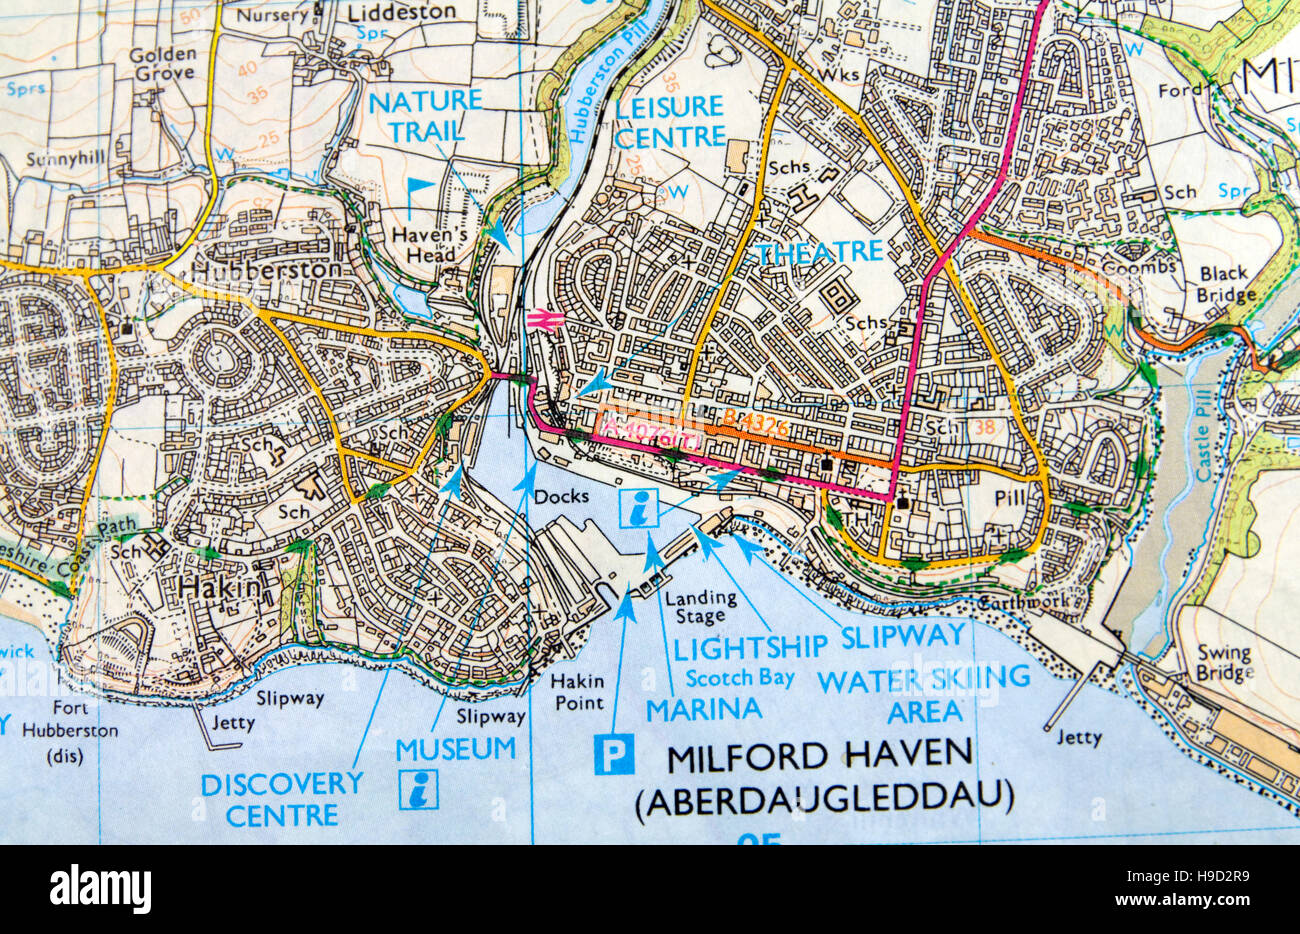 Milford Haven Wales United Kingdom Cruise Port of Call